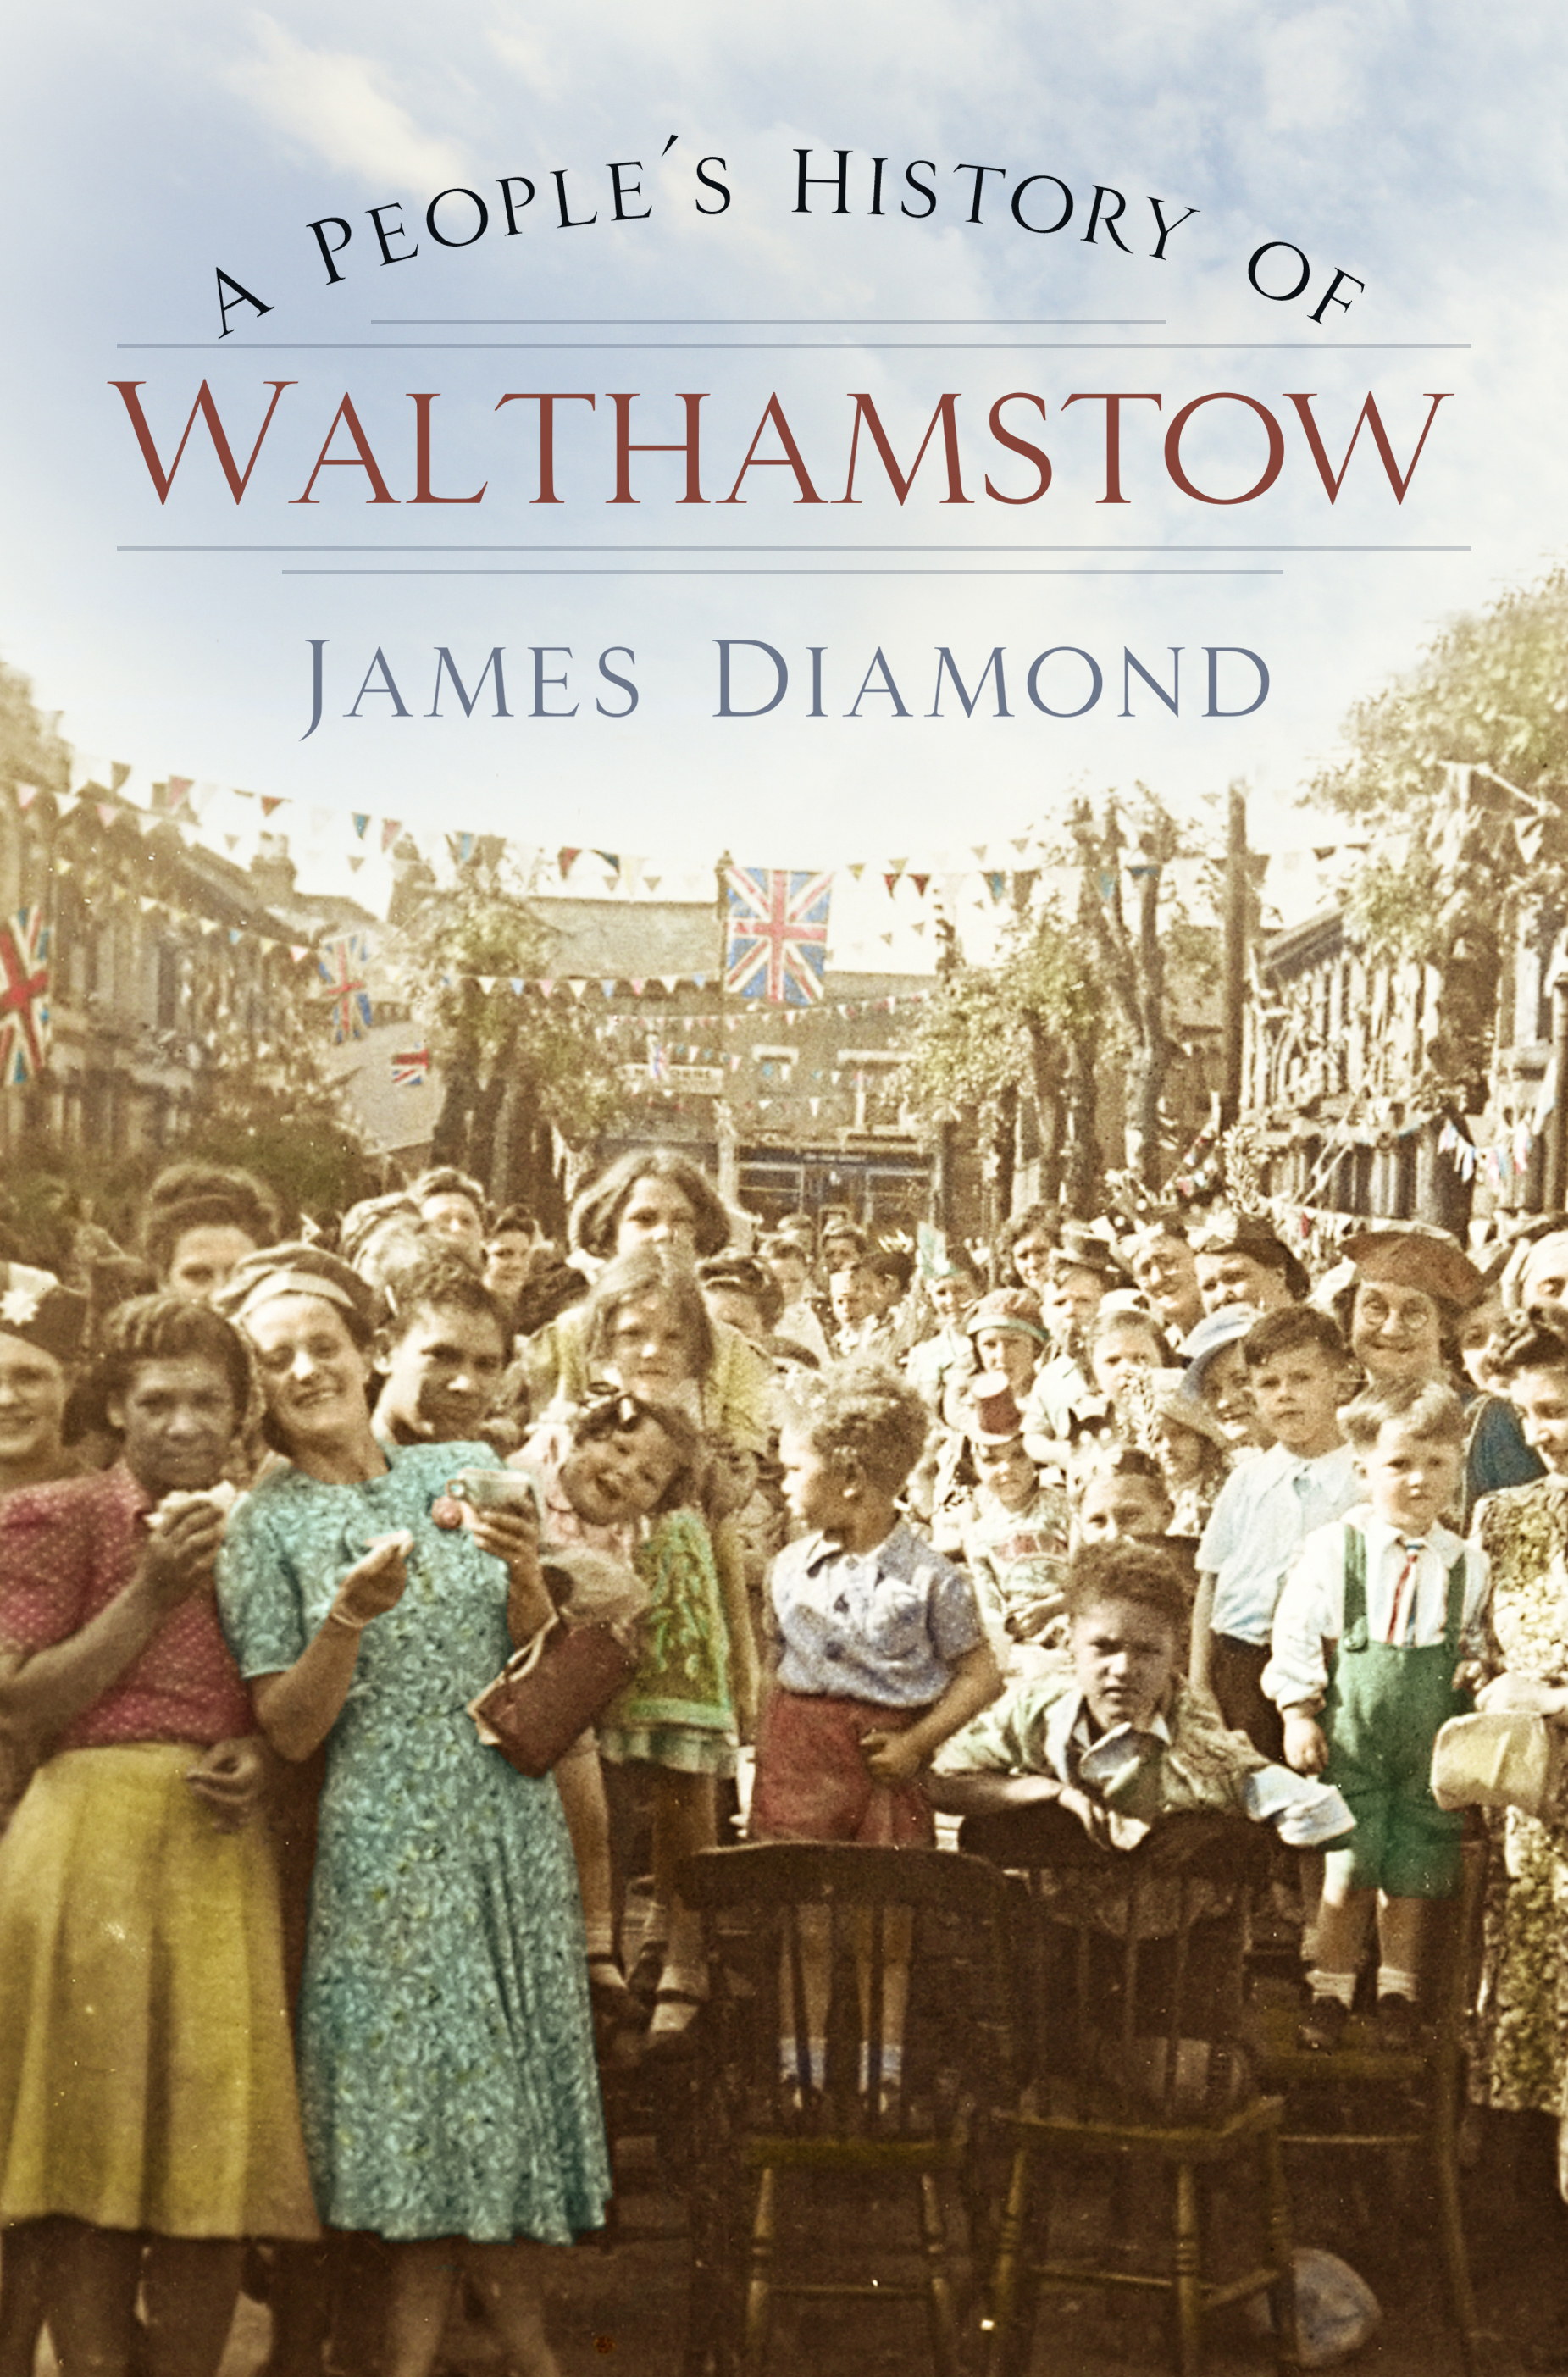 A People's History of Walthamstow by James Diamond